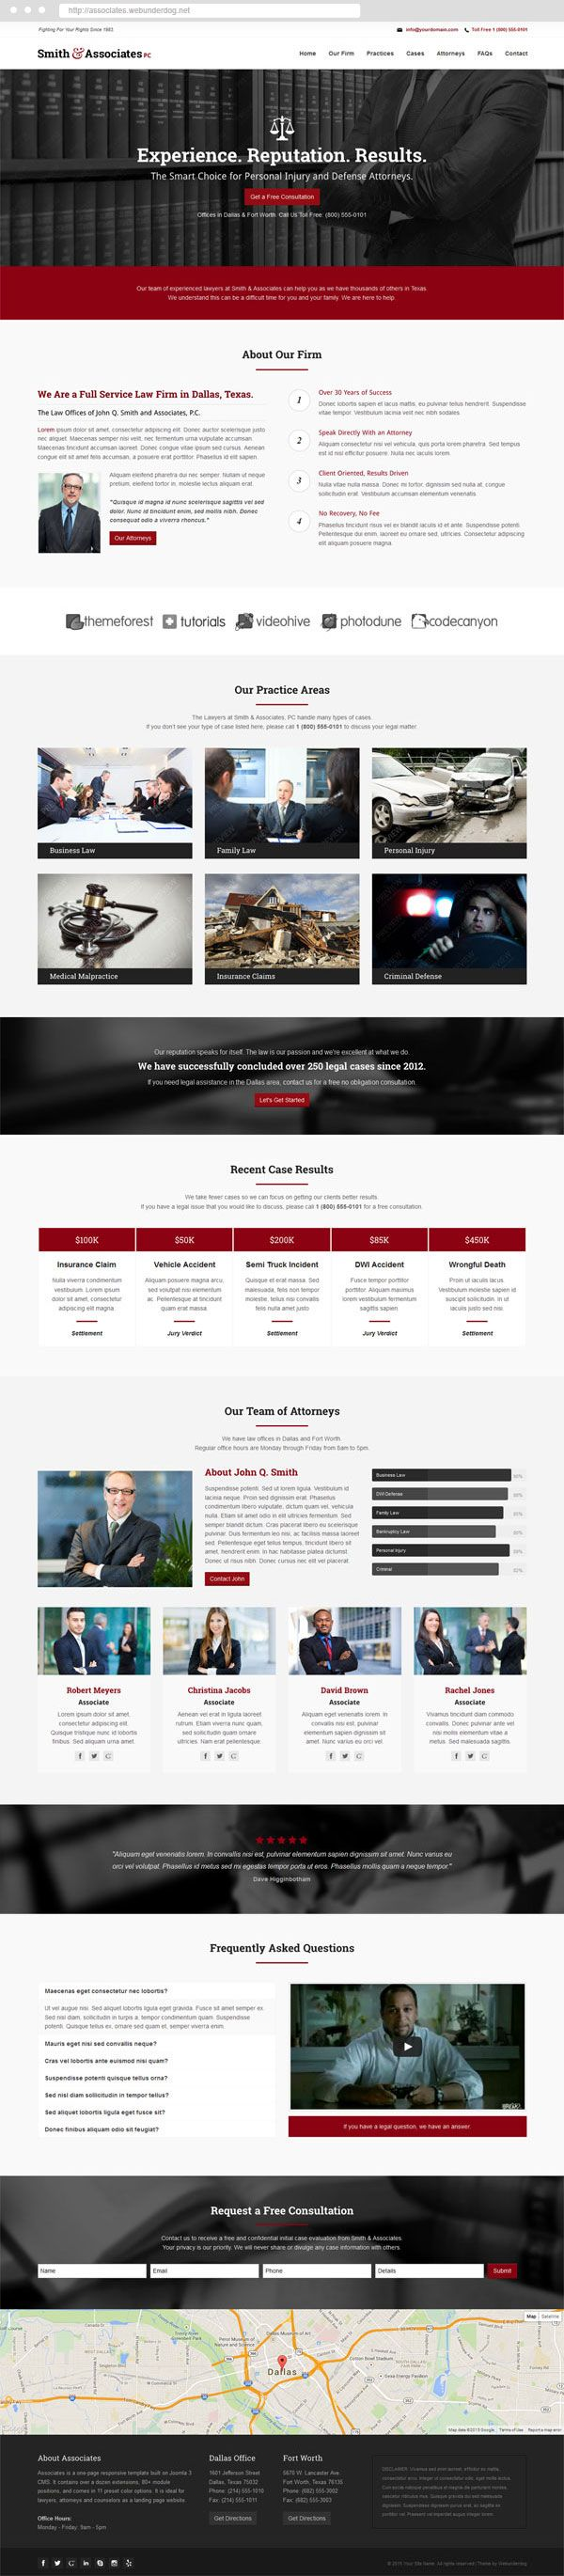 Joomla Lawyer Template - Associates - #Lawyer & #Attorney One Page Responsive #webdesign. #joomla #template #themeforest #landingpage #onepage #inspiration #law